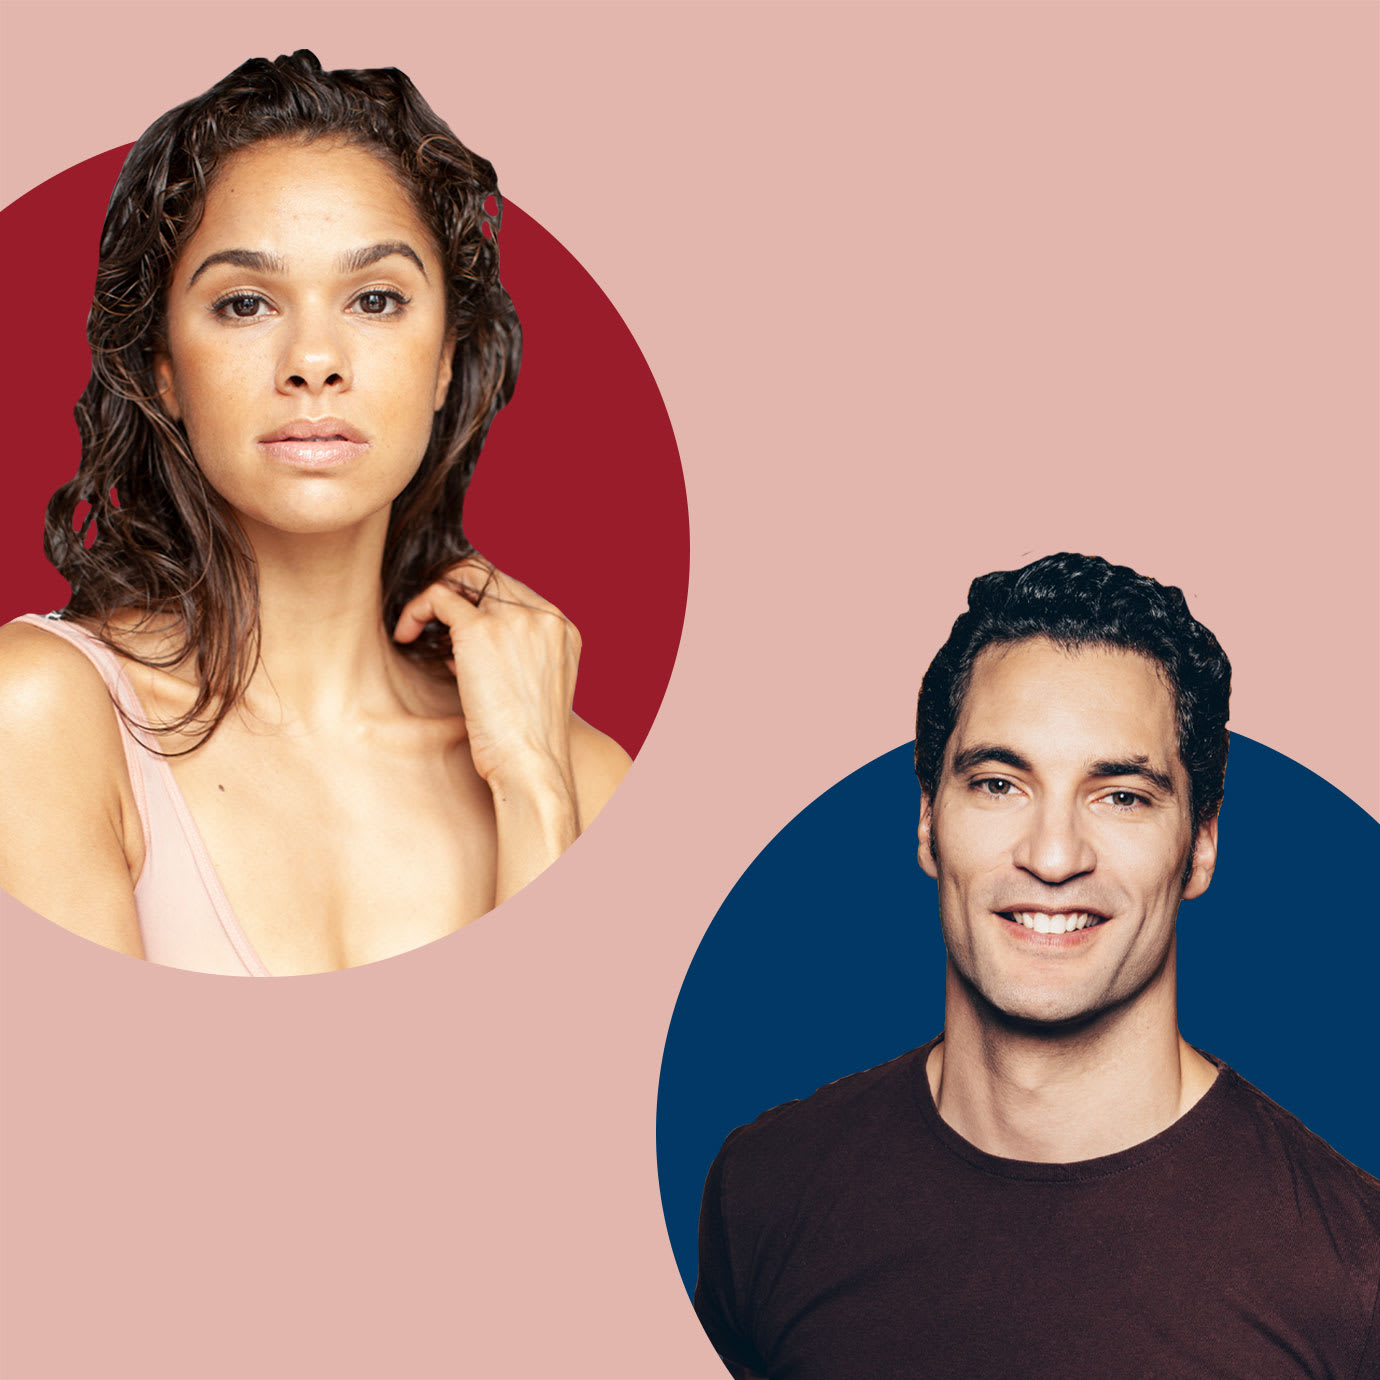 A woman and a man cutout onto pink red and blue backgrounds.